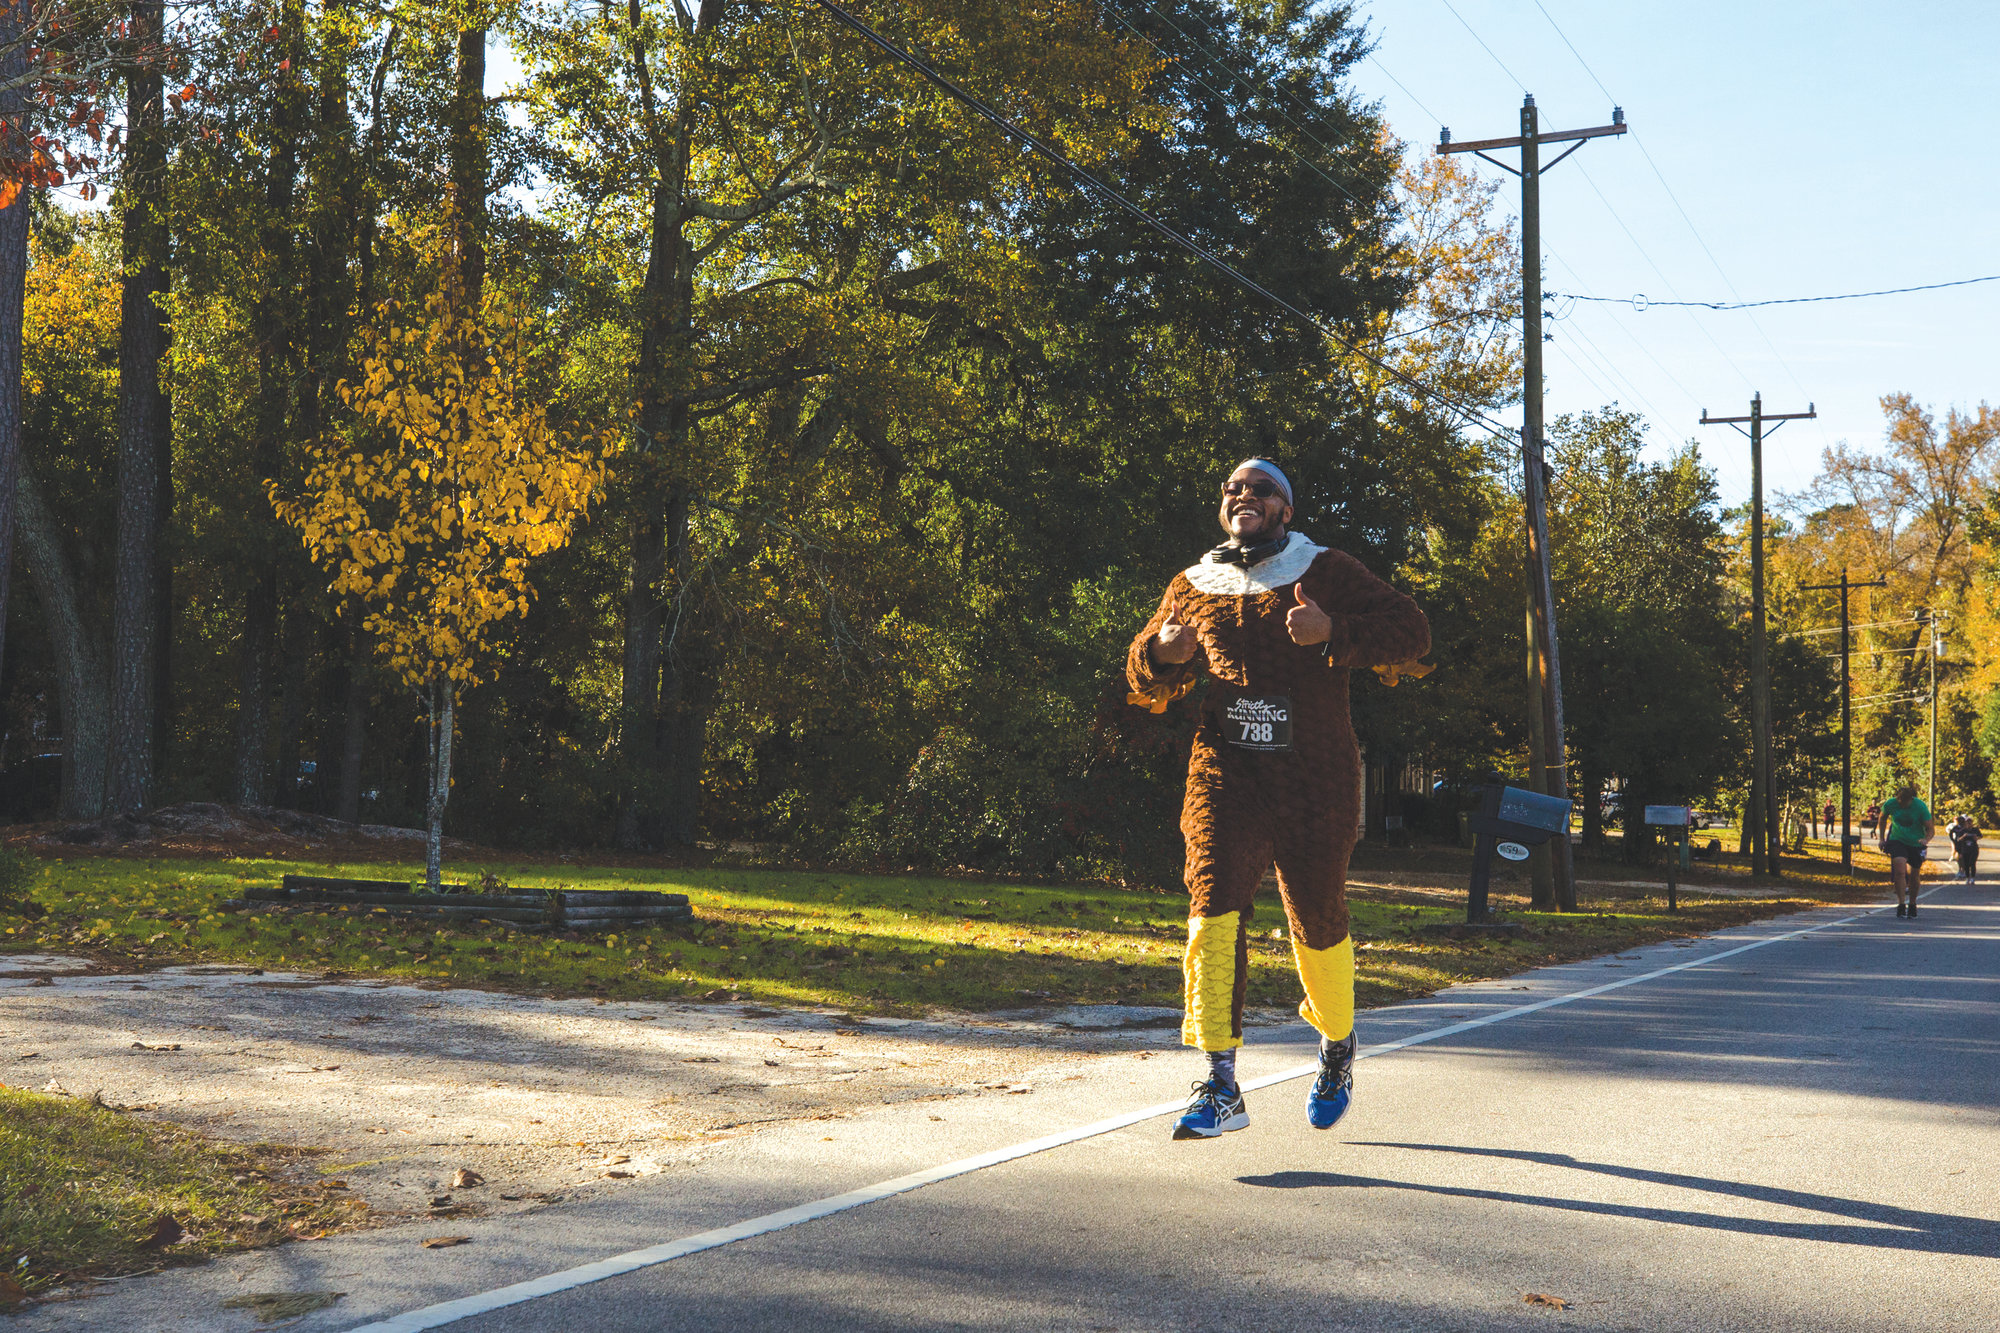 Teresa Jones approaches the finish line of the Thanksgiving Day Turkey Trot.